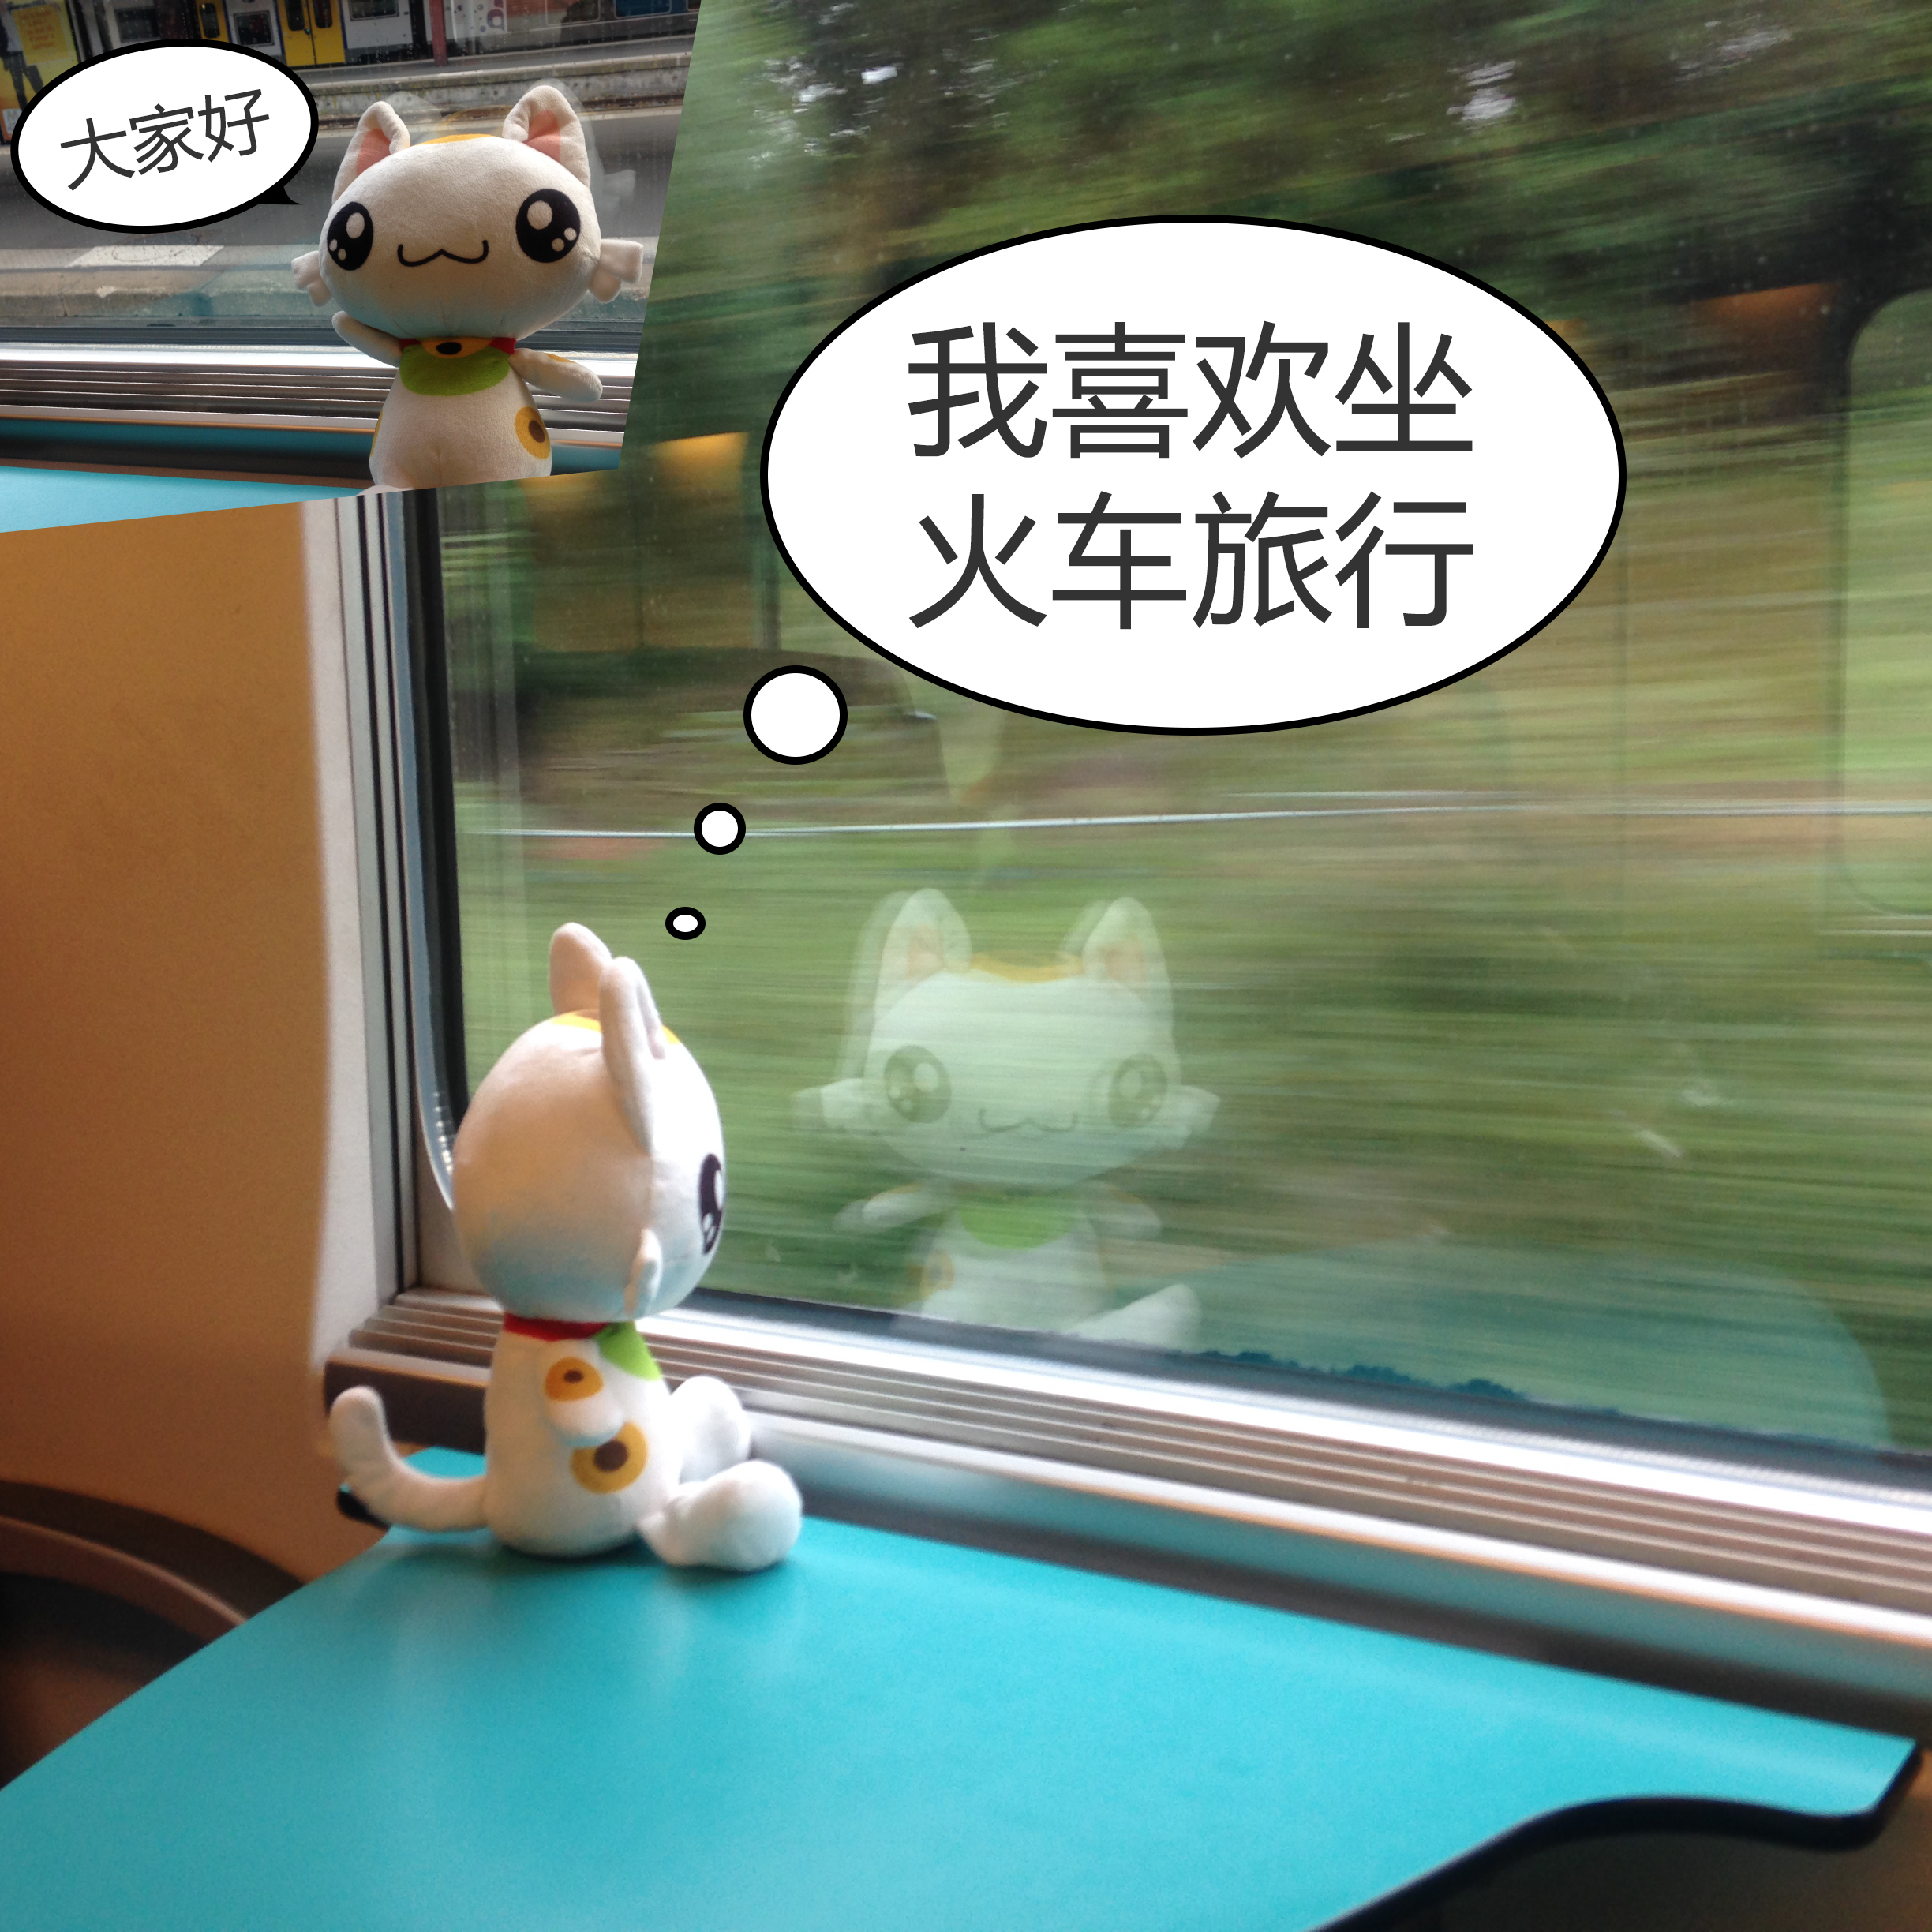 "Nincha's enjoying taking the train and says ""我喜欢做火车旅行'"